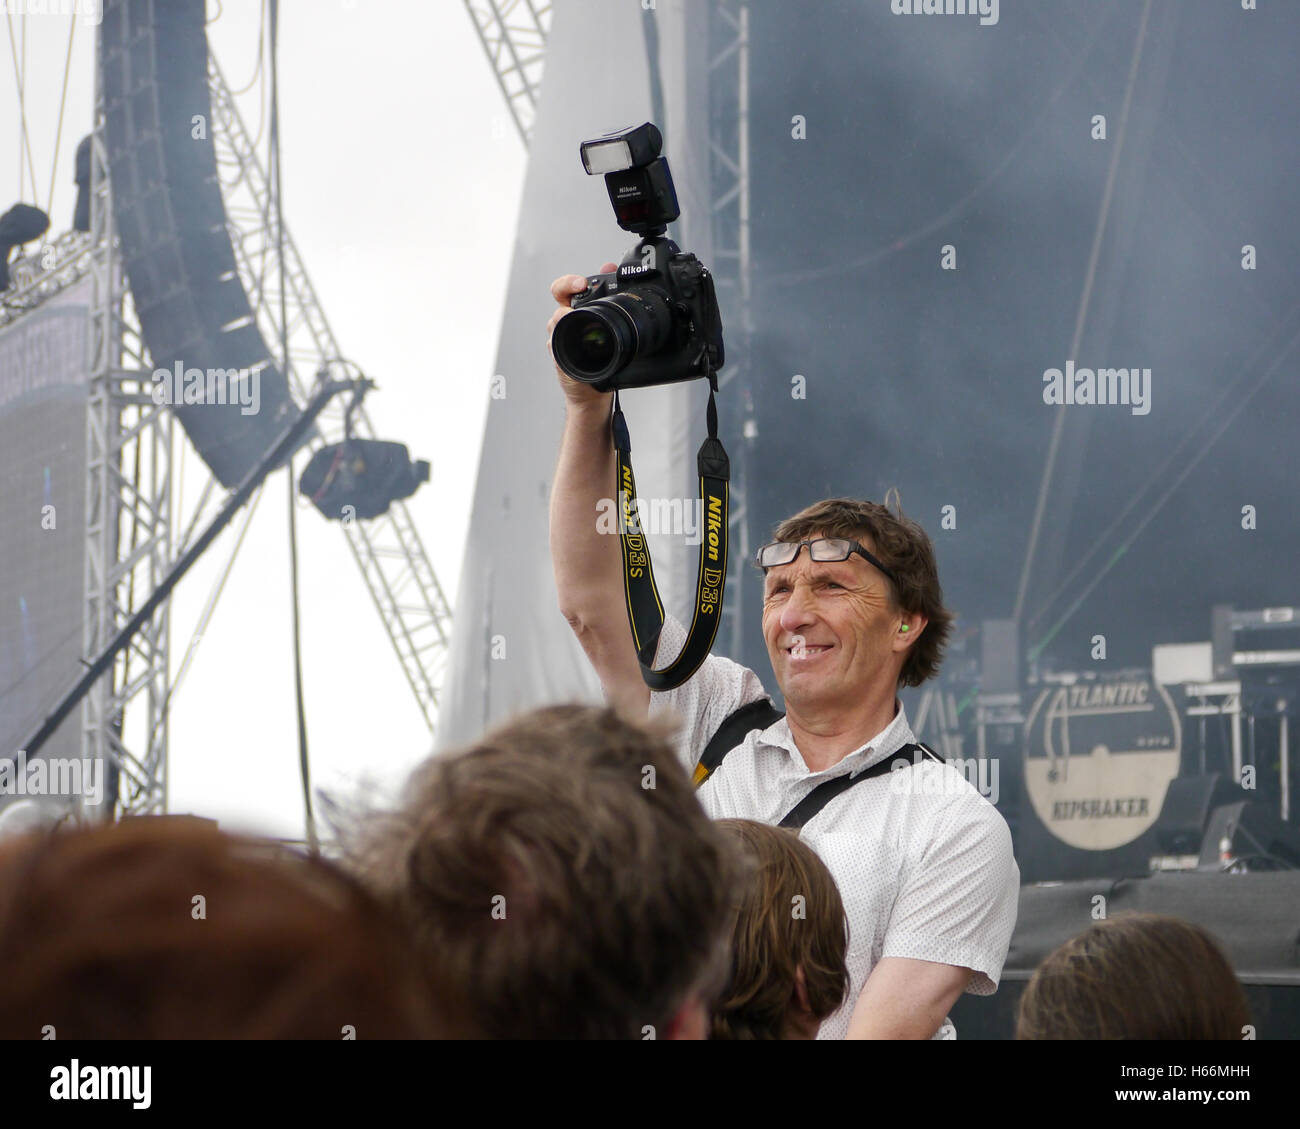 A photographer takes a crowd shot at a music festival - Stock Image